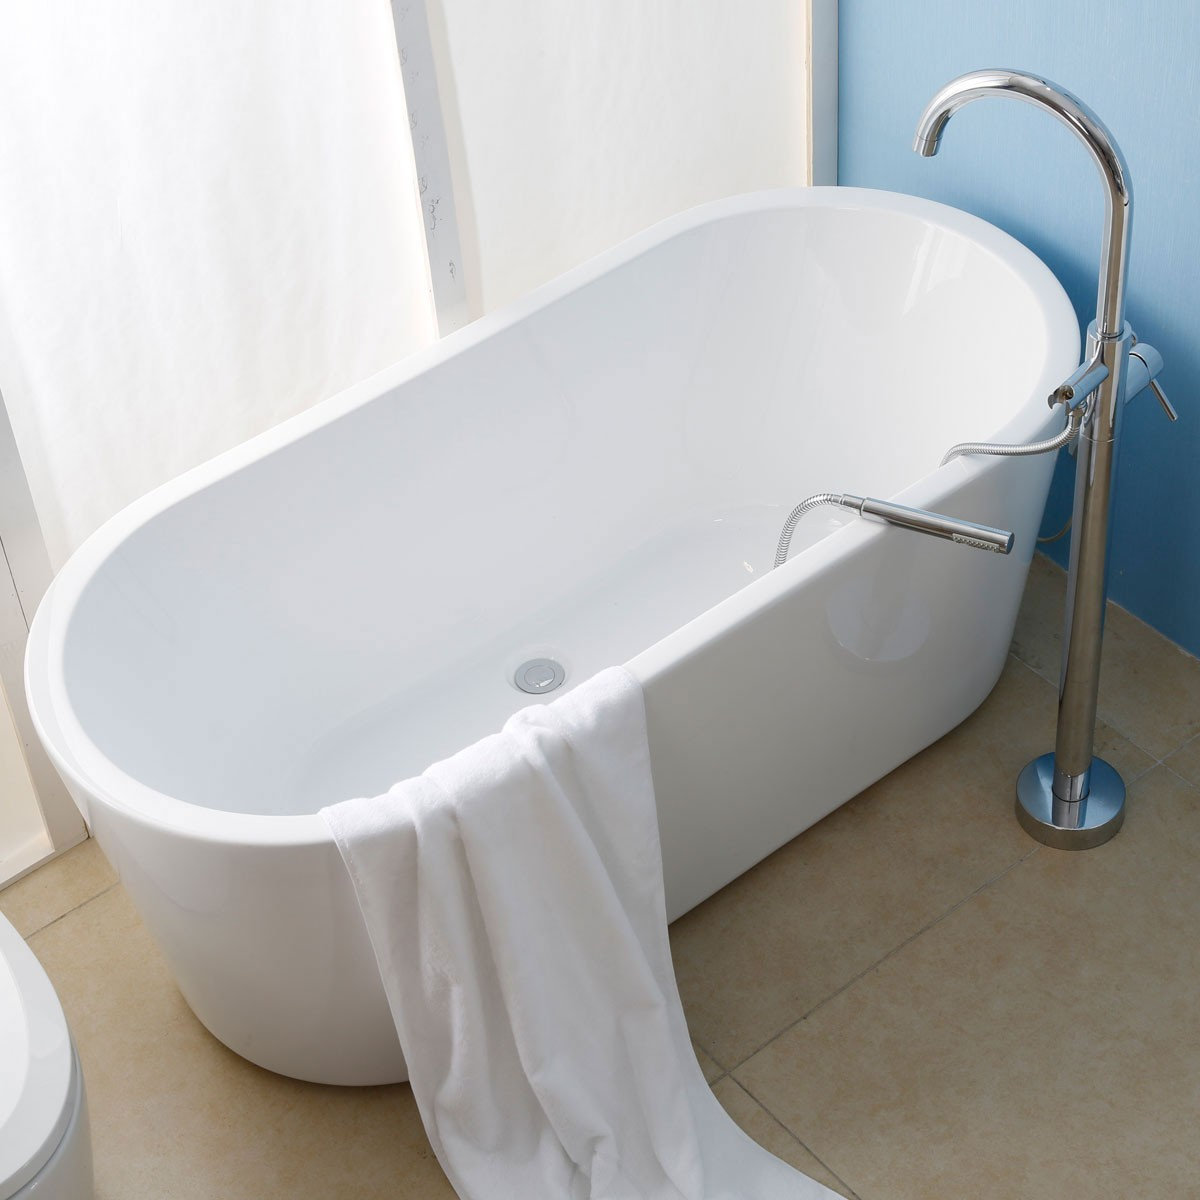 65 In Seamless Acrylic Freestanding Bathtub (DK-AT-1681W)